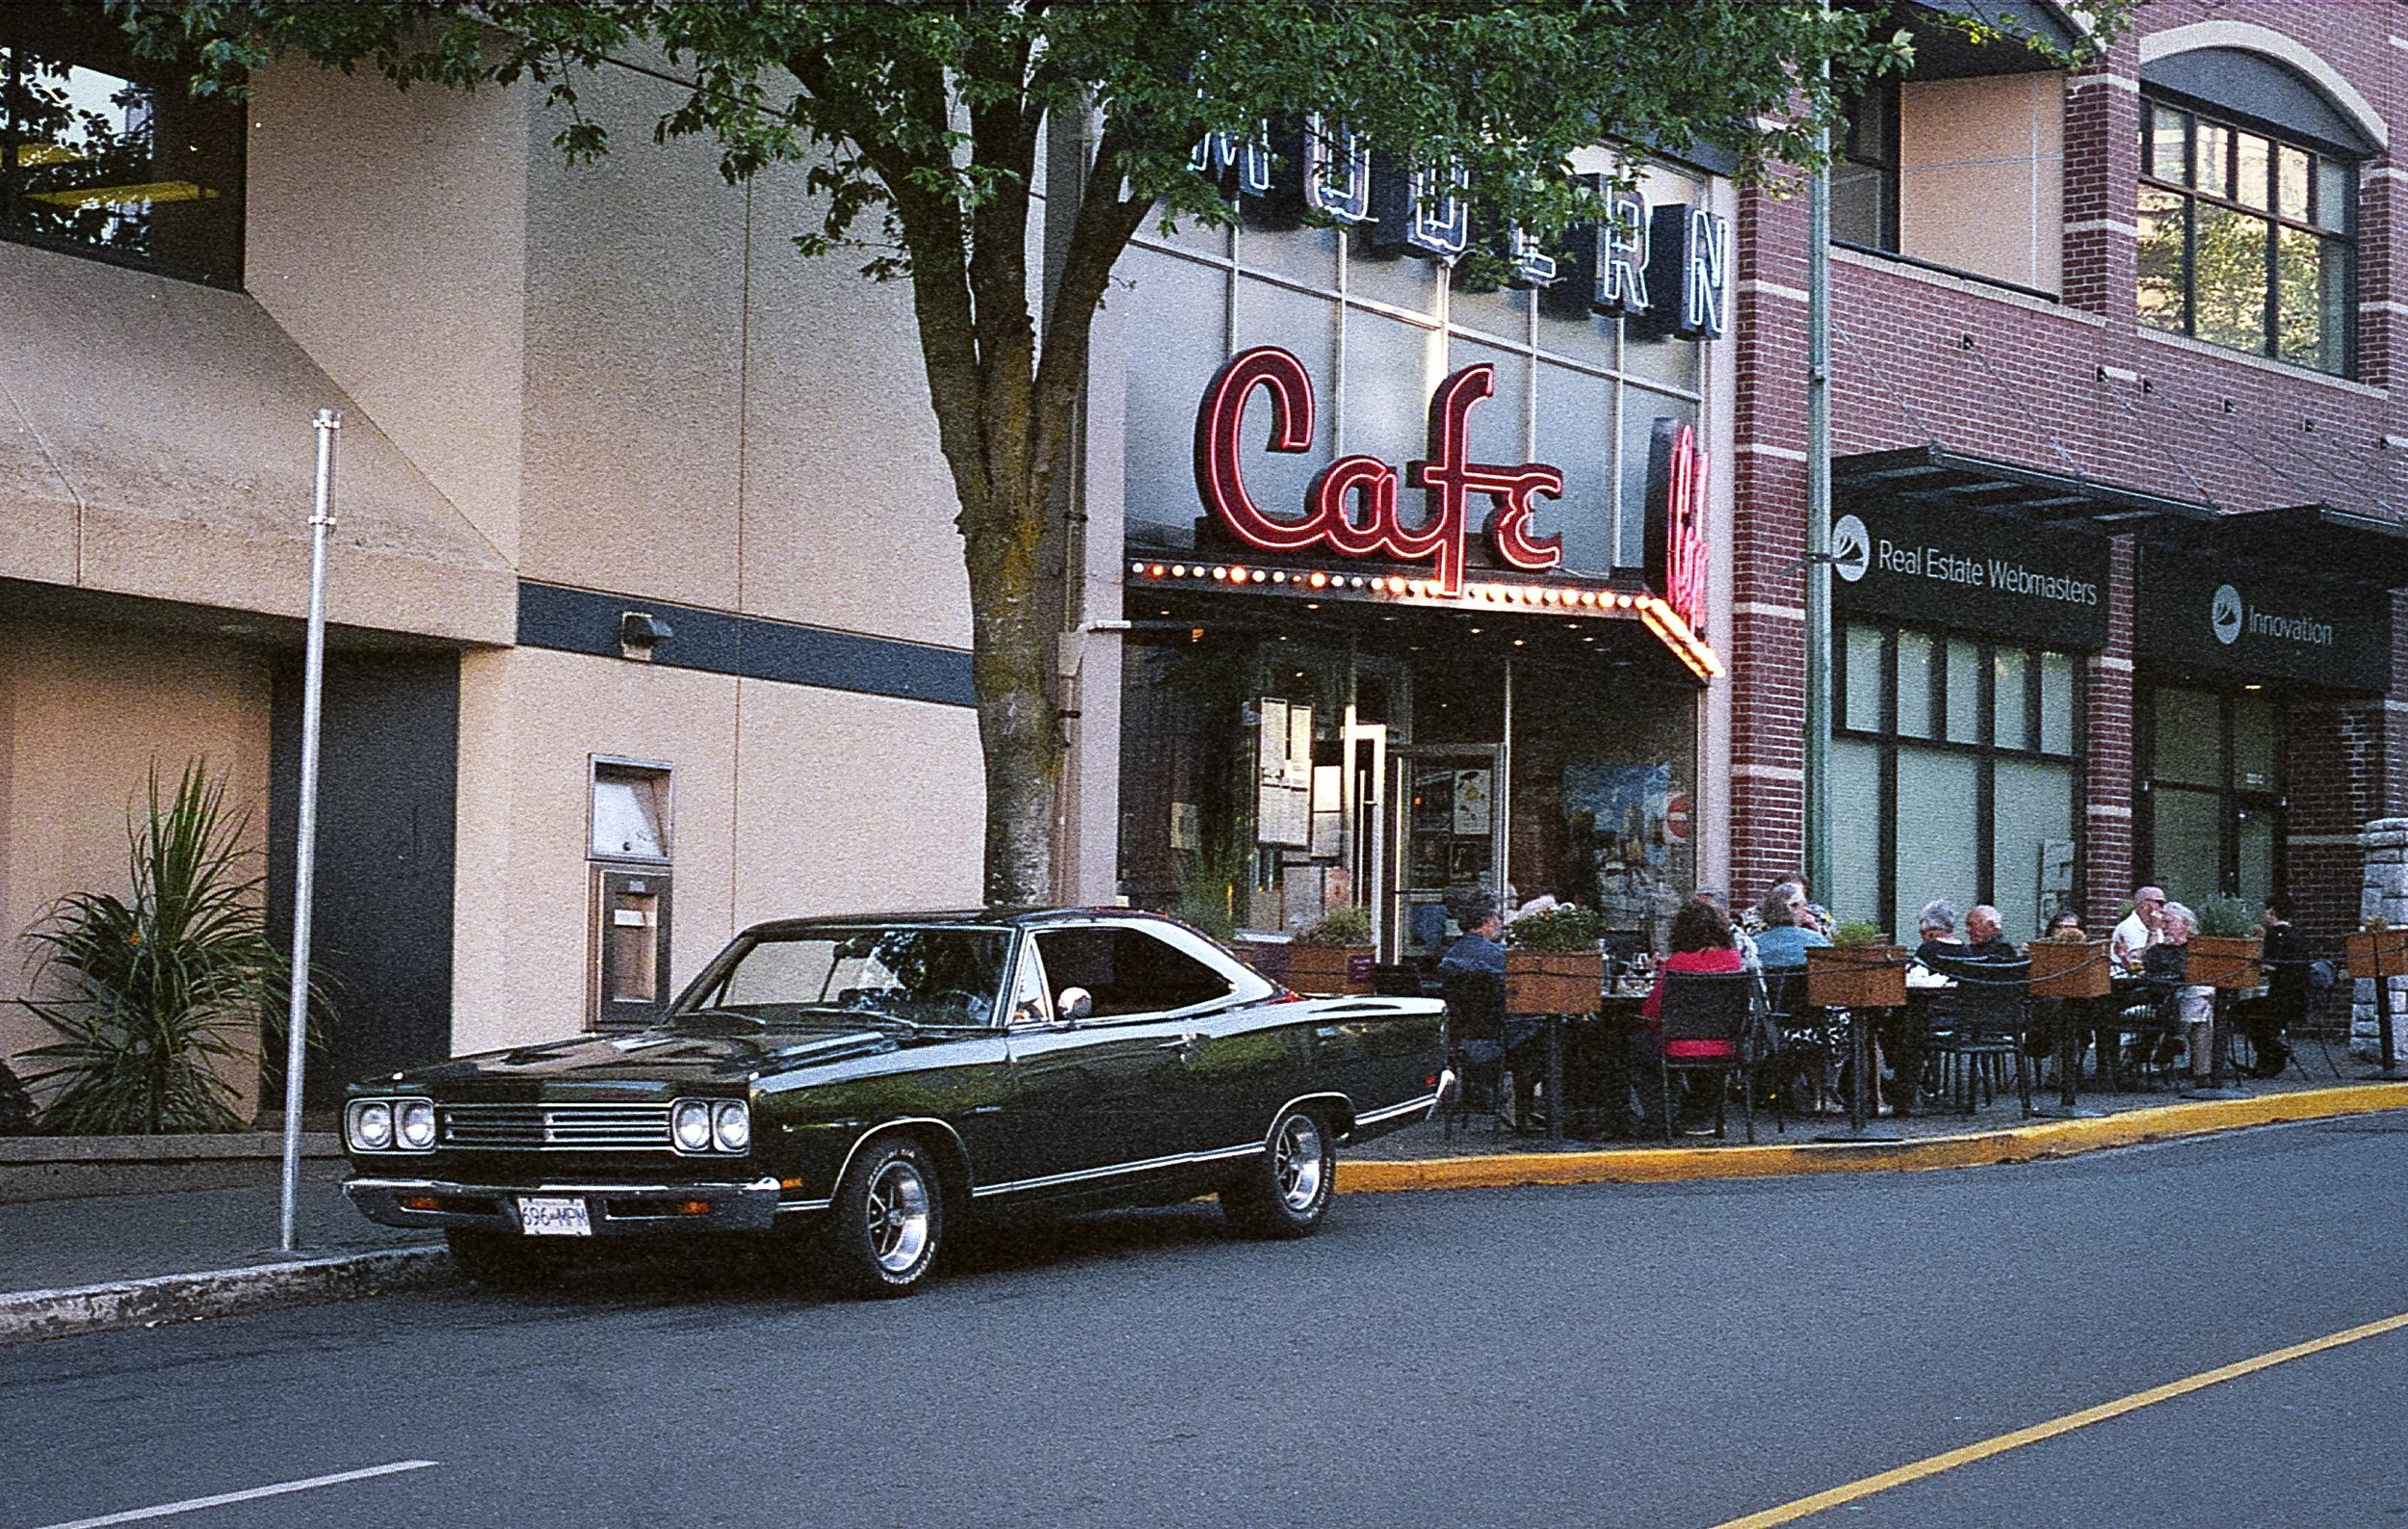 Downtown Nanaimo British Columbia